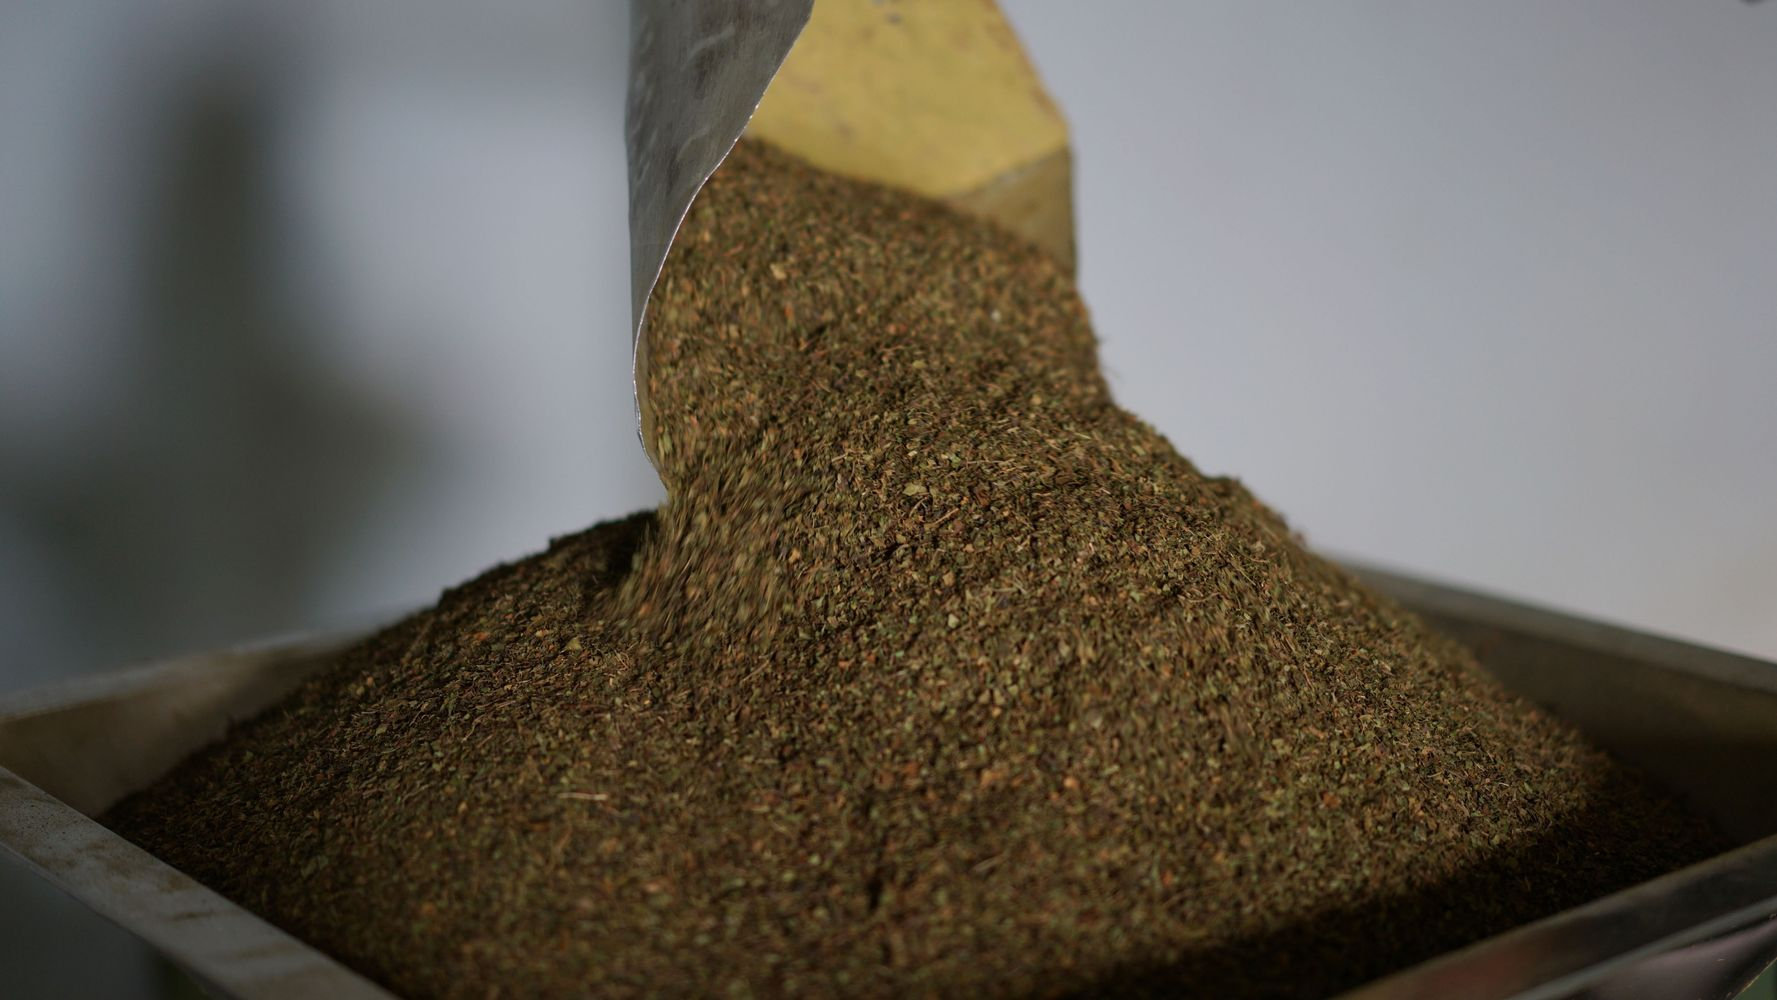 Kratom Users In States That Ban It Discuss How Prohibition Has Made Life Worse